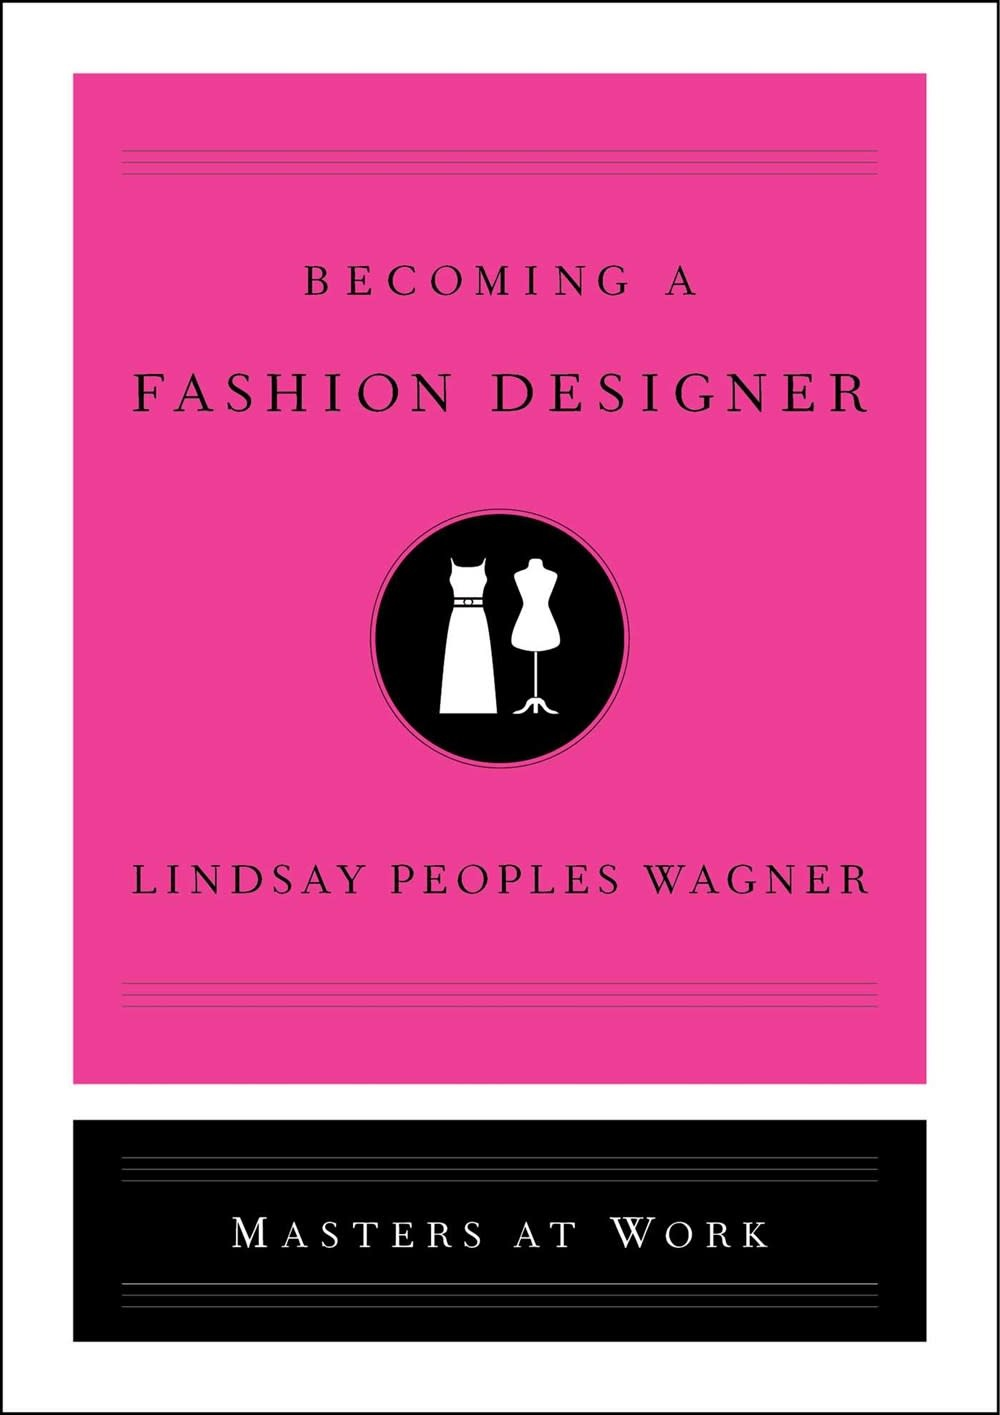 Simon & Schuster Becoming a Fashion Designer